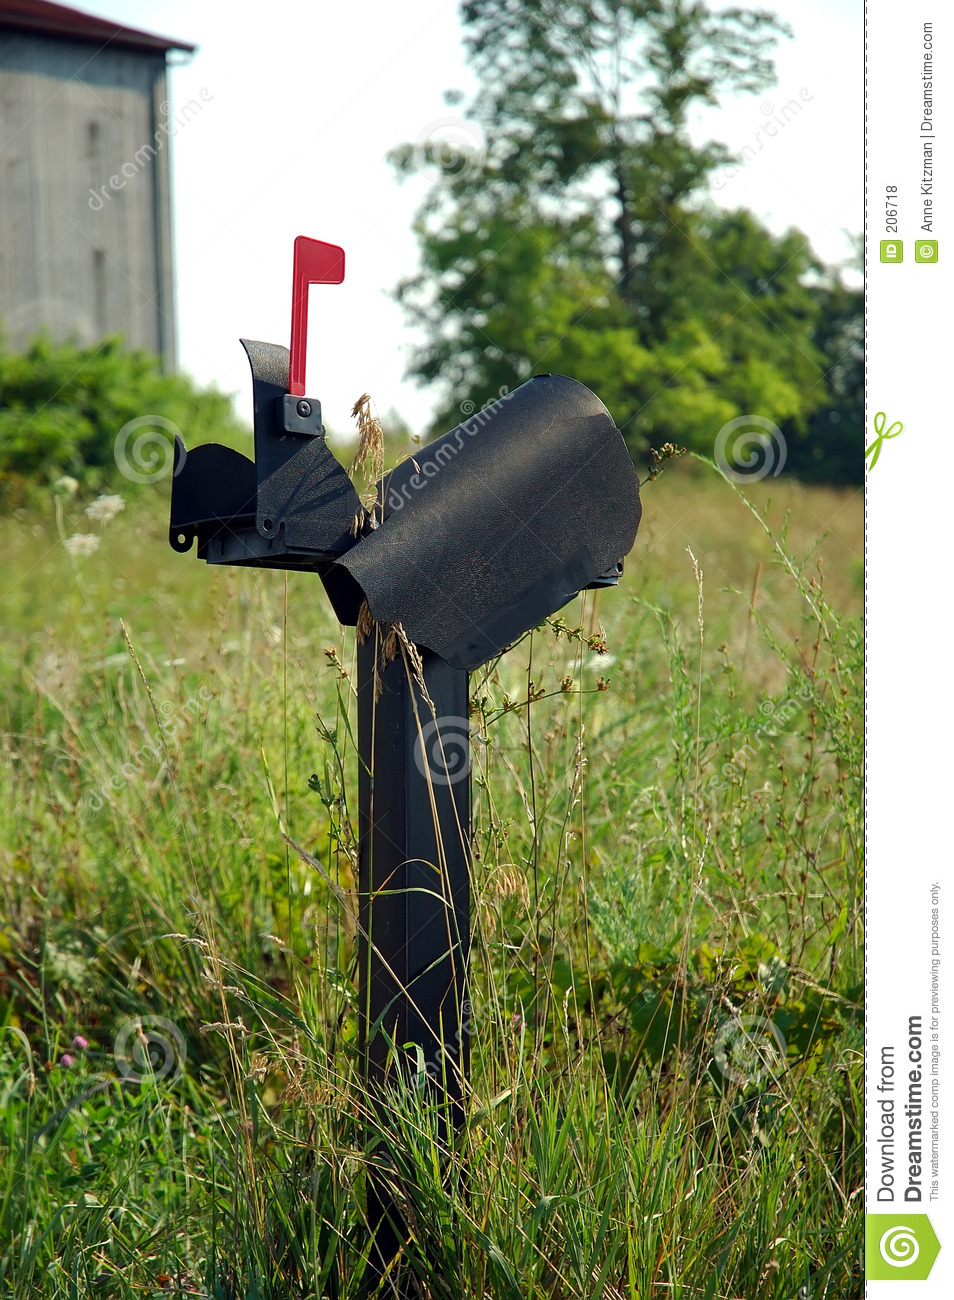 broken mailbox, with the red flag raised, sitting in an overgrown ...